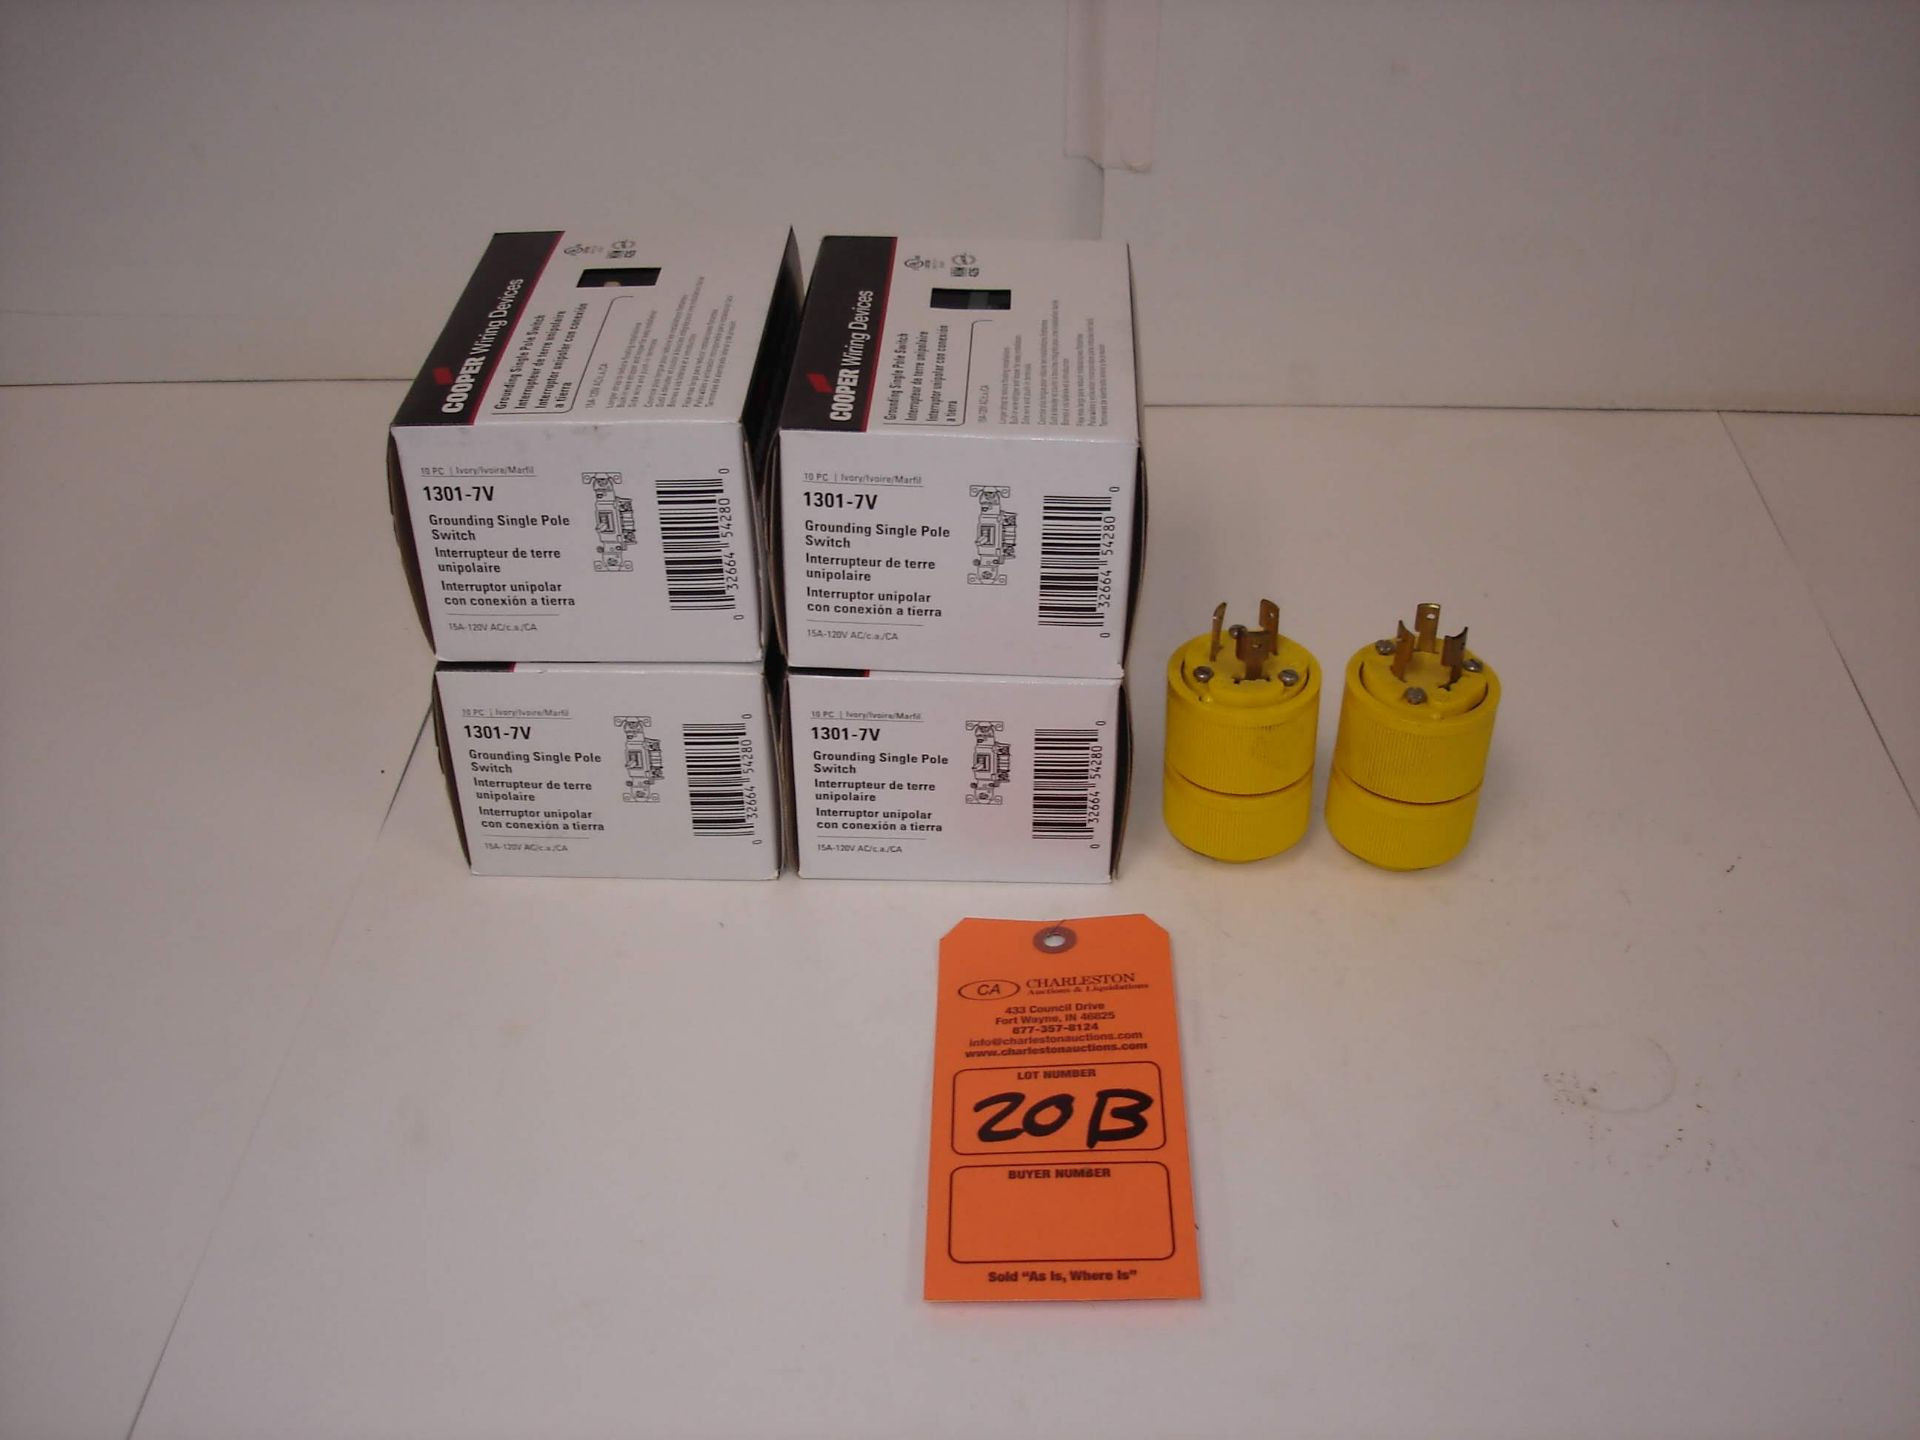 Lot 20B - (6) MISC BRANDED HOME IMPROVEMENT PARTS: GE L-20 TWIST-LOCK PLUG AND ALL OTHER ITEMS INCLUDED IN